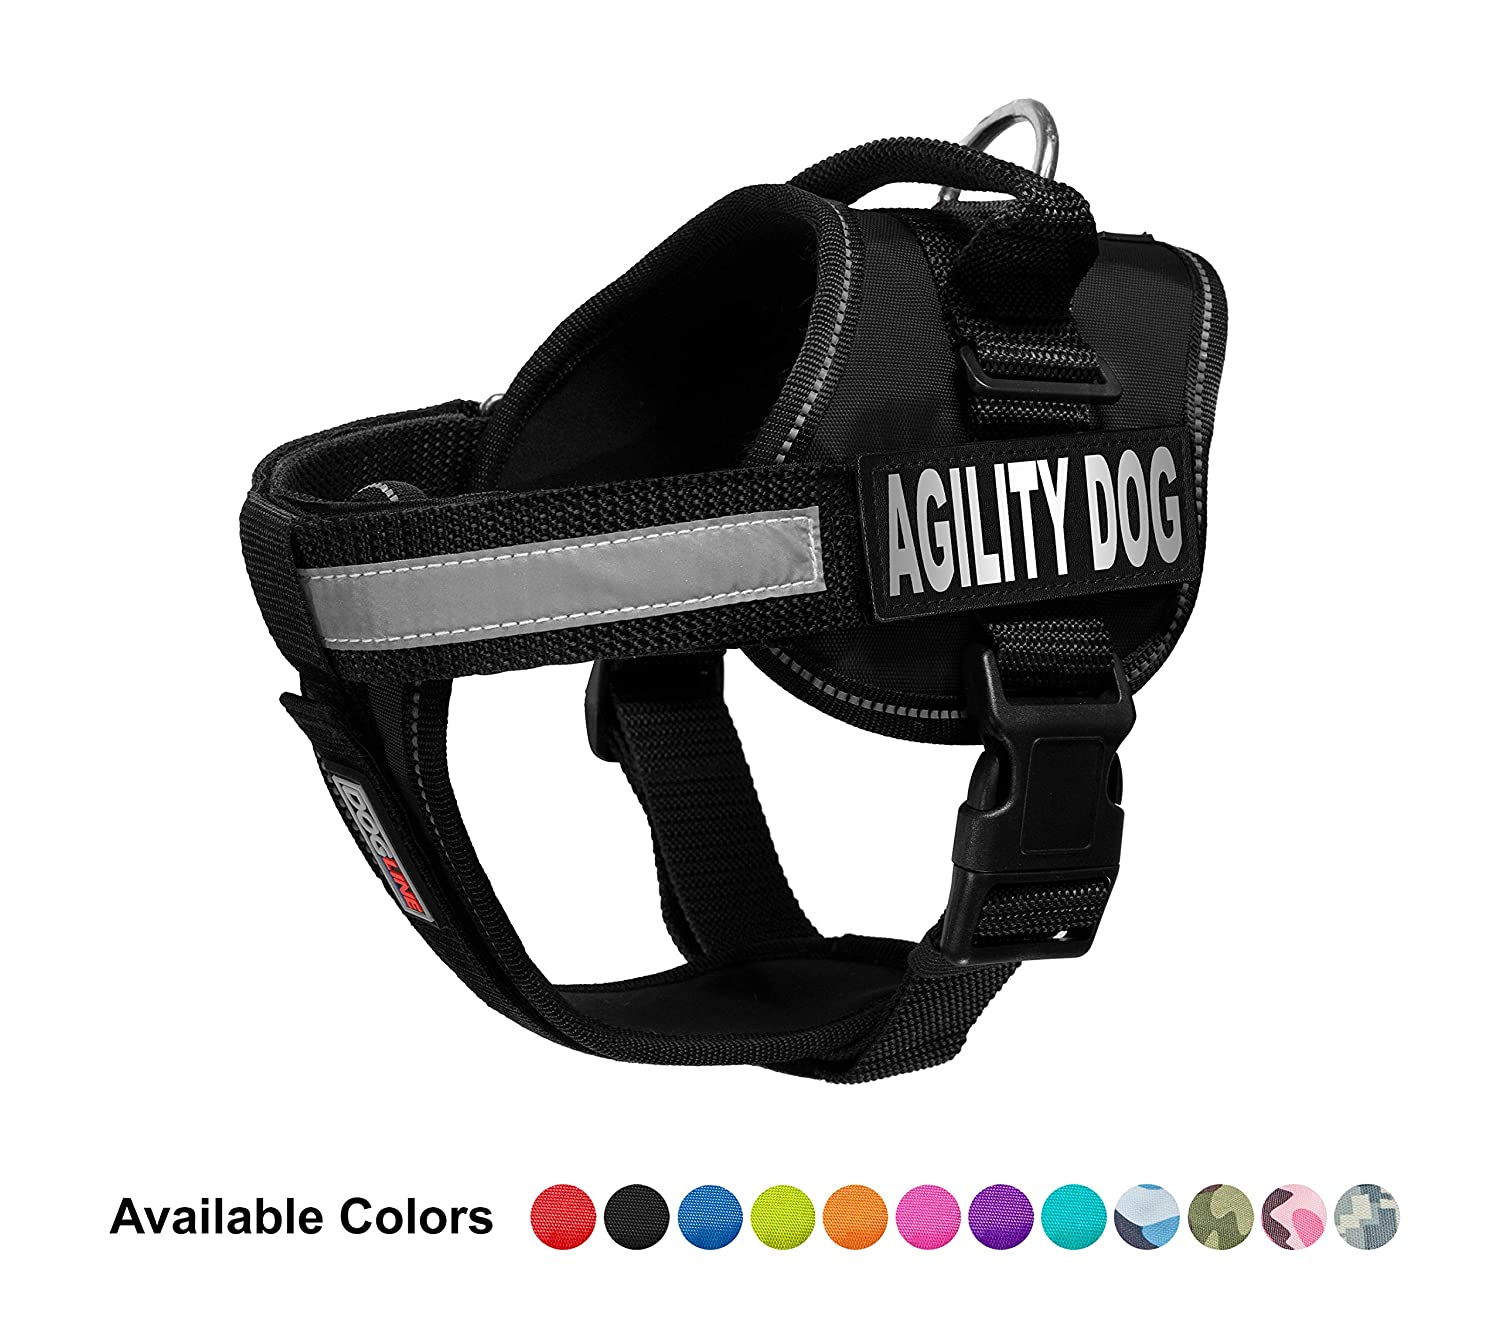 Dogline Unimax Multi-Purpose Vest Harness for Dogs and 2 Removable Agility Dog Patches, X-Large, Black